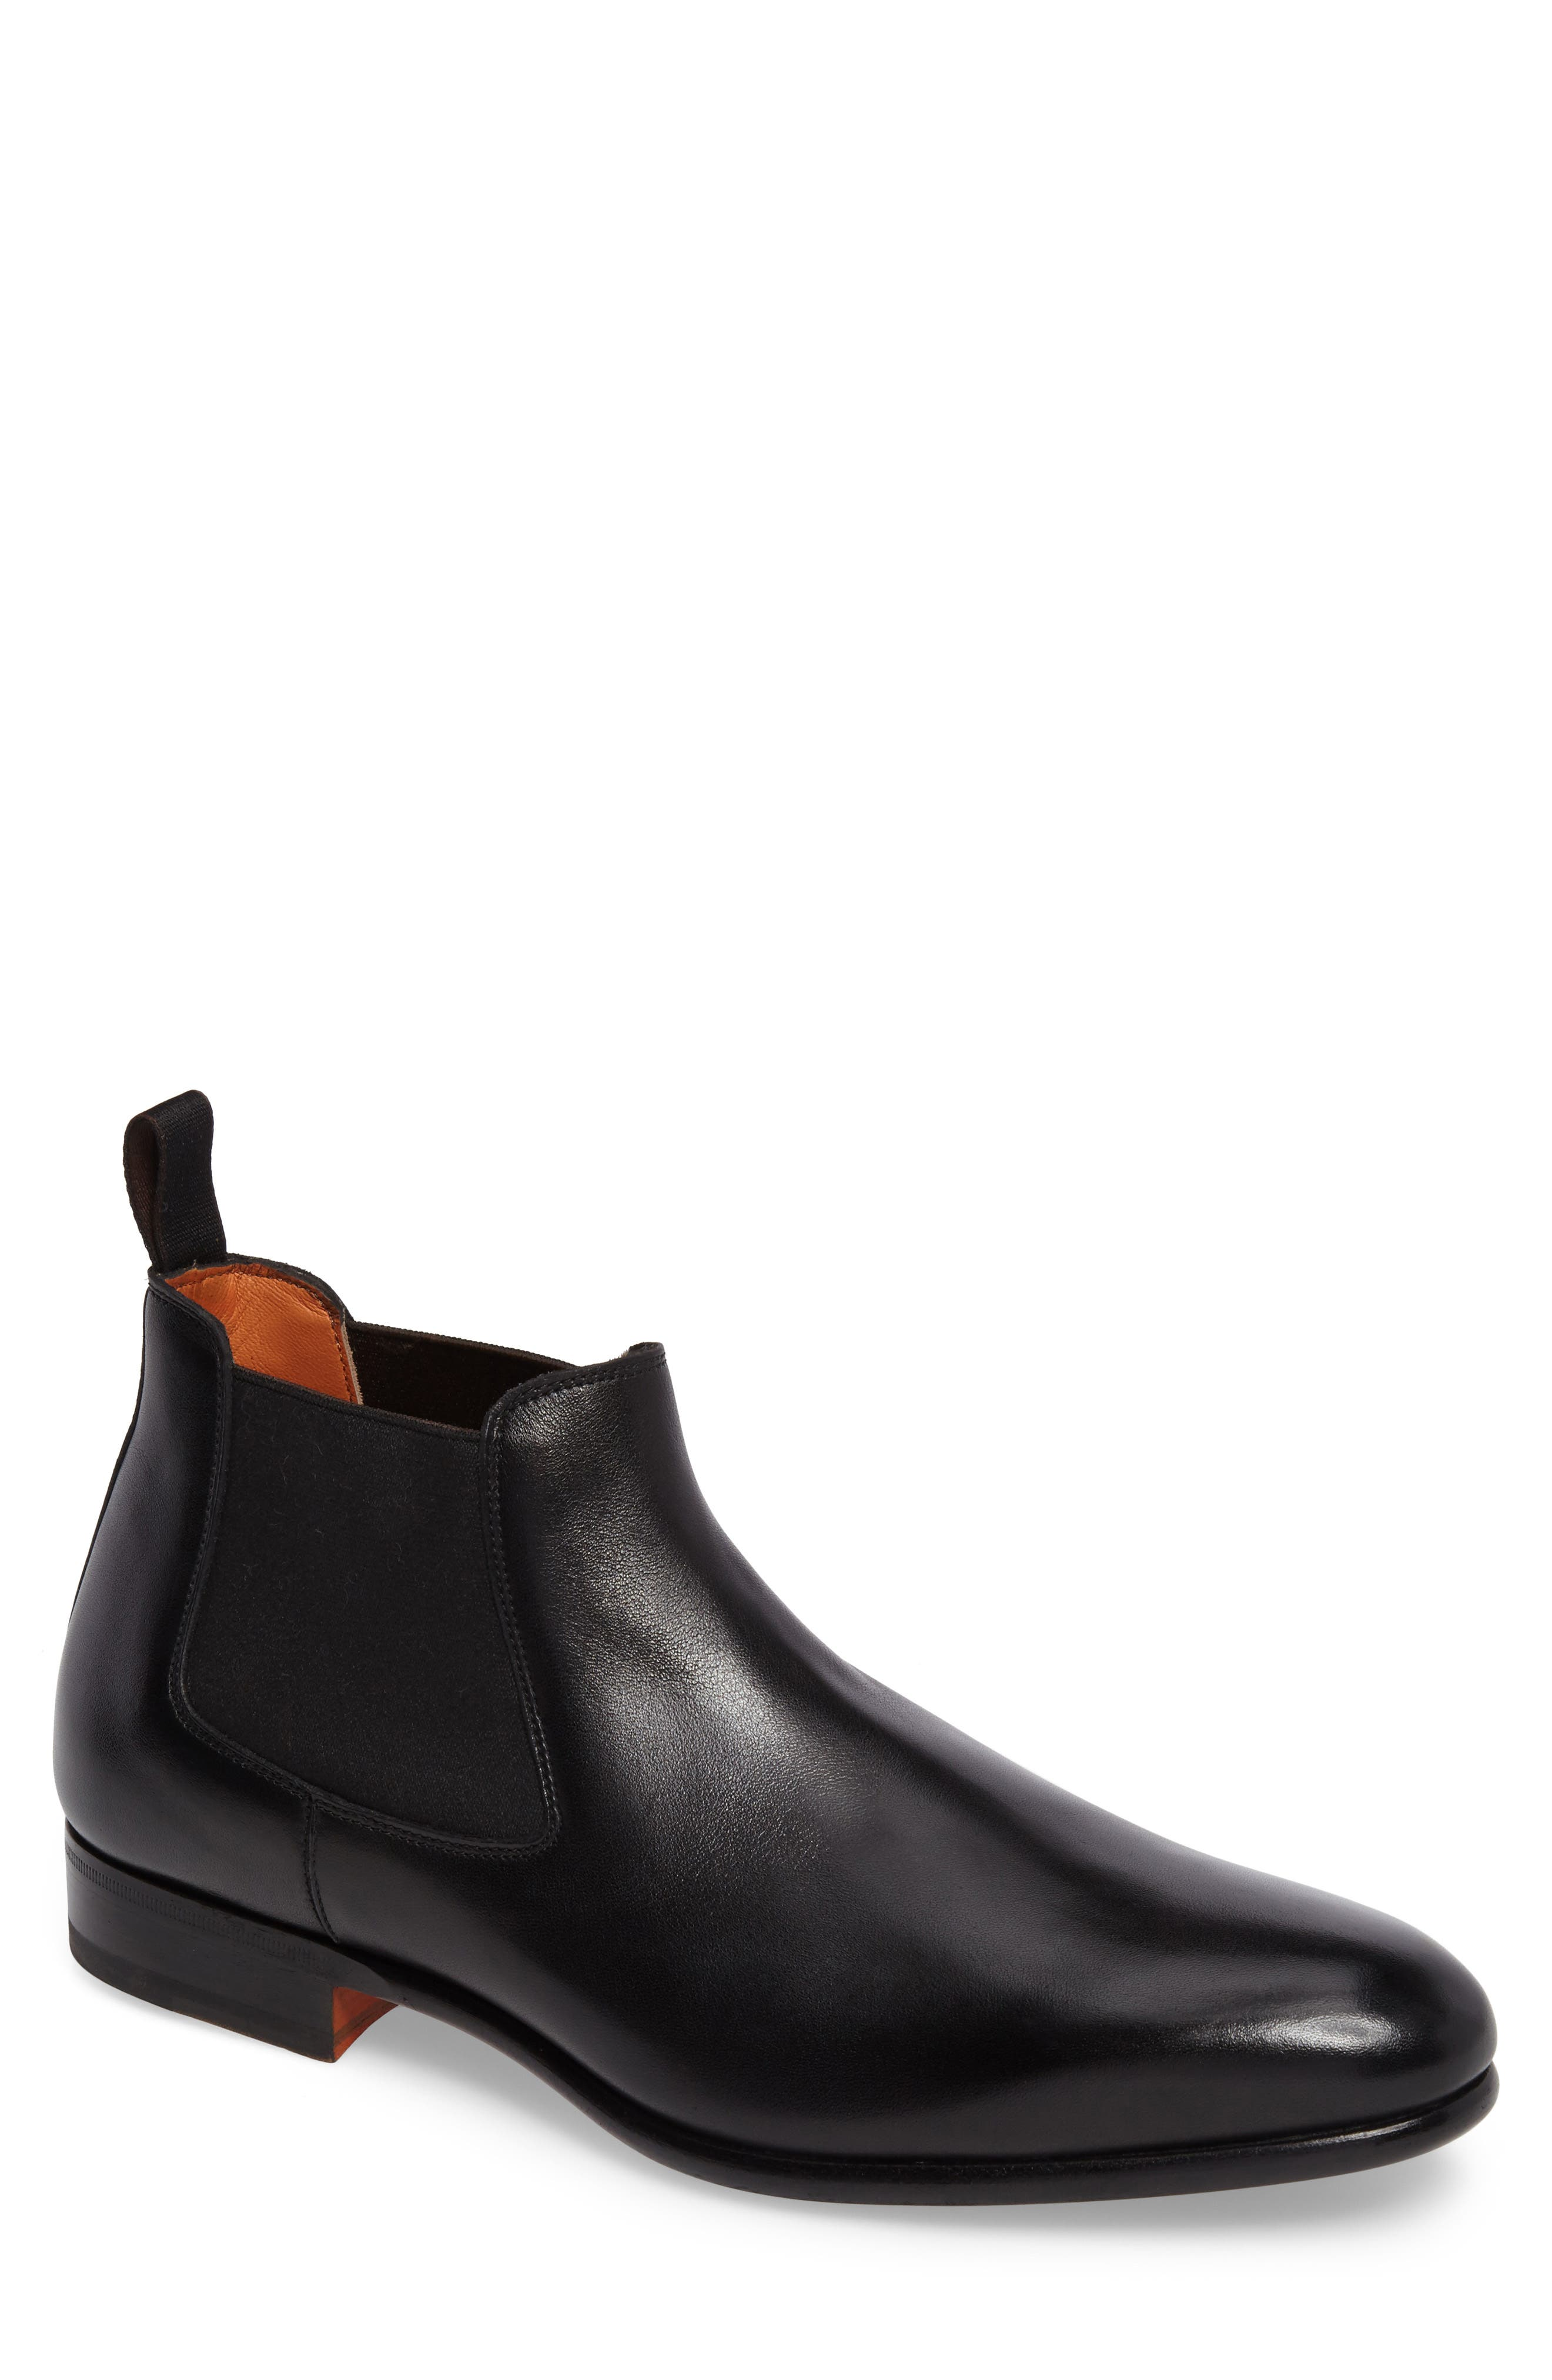 Gunther Chelsea Boot,                             Main thumbnail 1, color,                             Black Leather